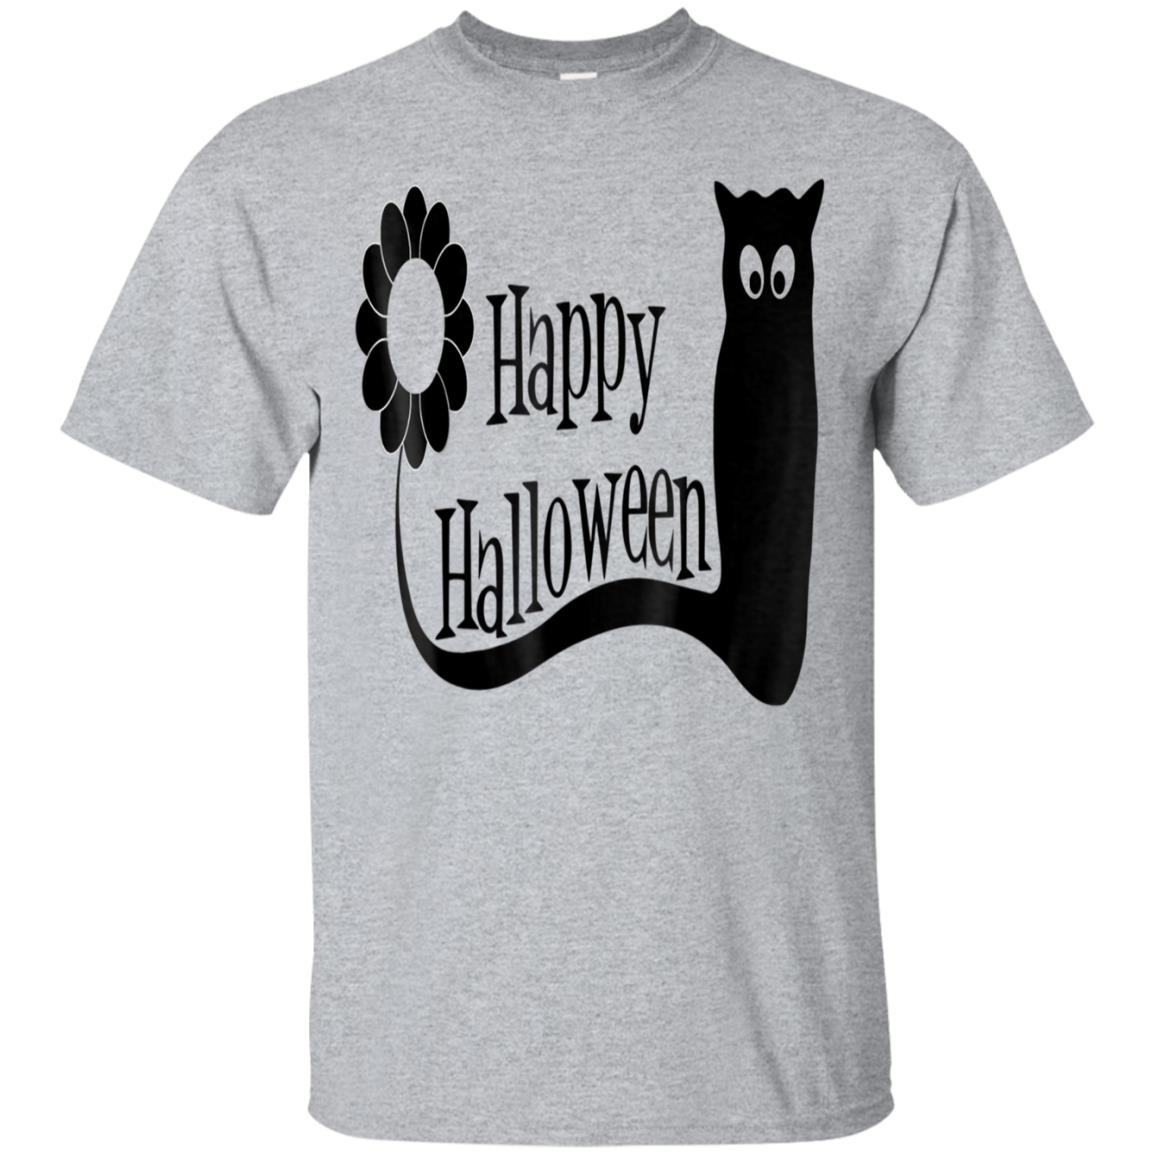 91ccbcca Awesome happy halloween 2018 t shirt with black cat ramah gift ...